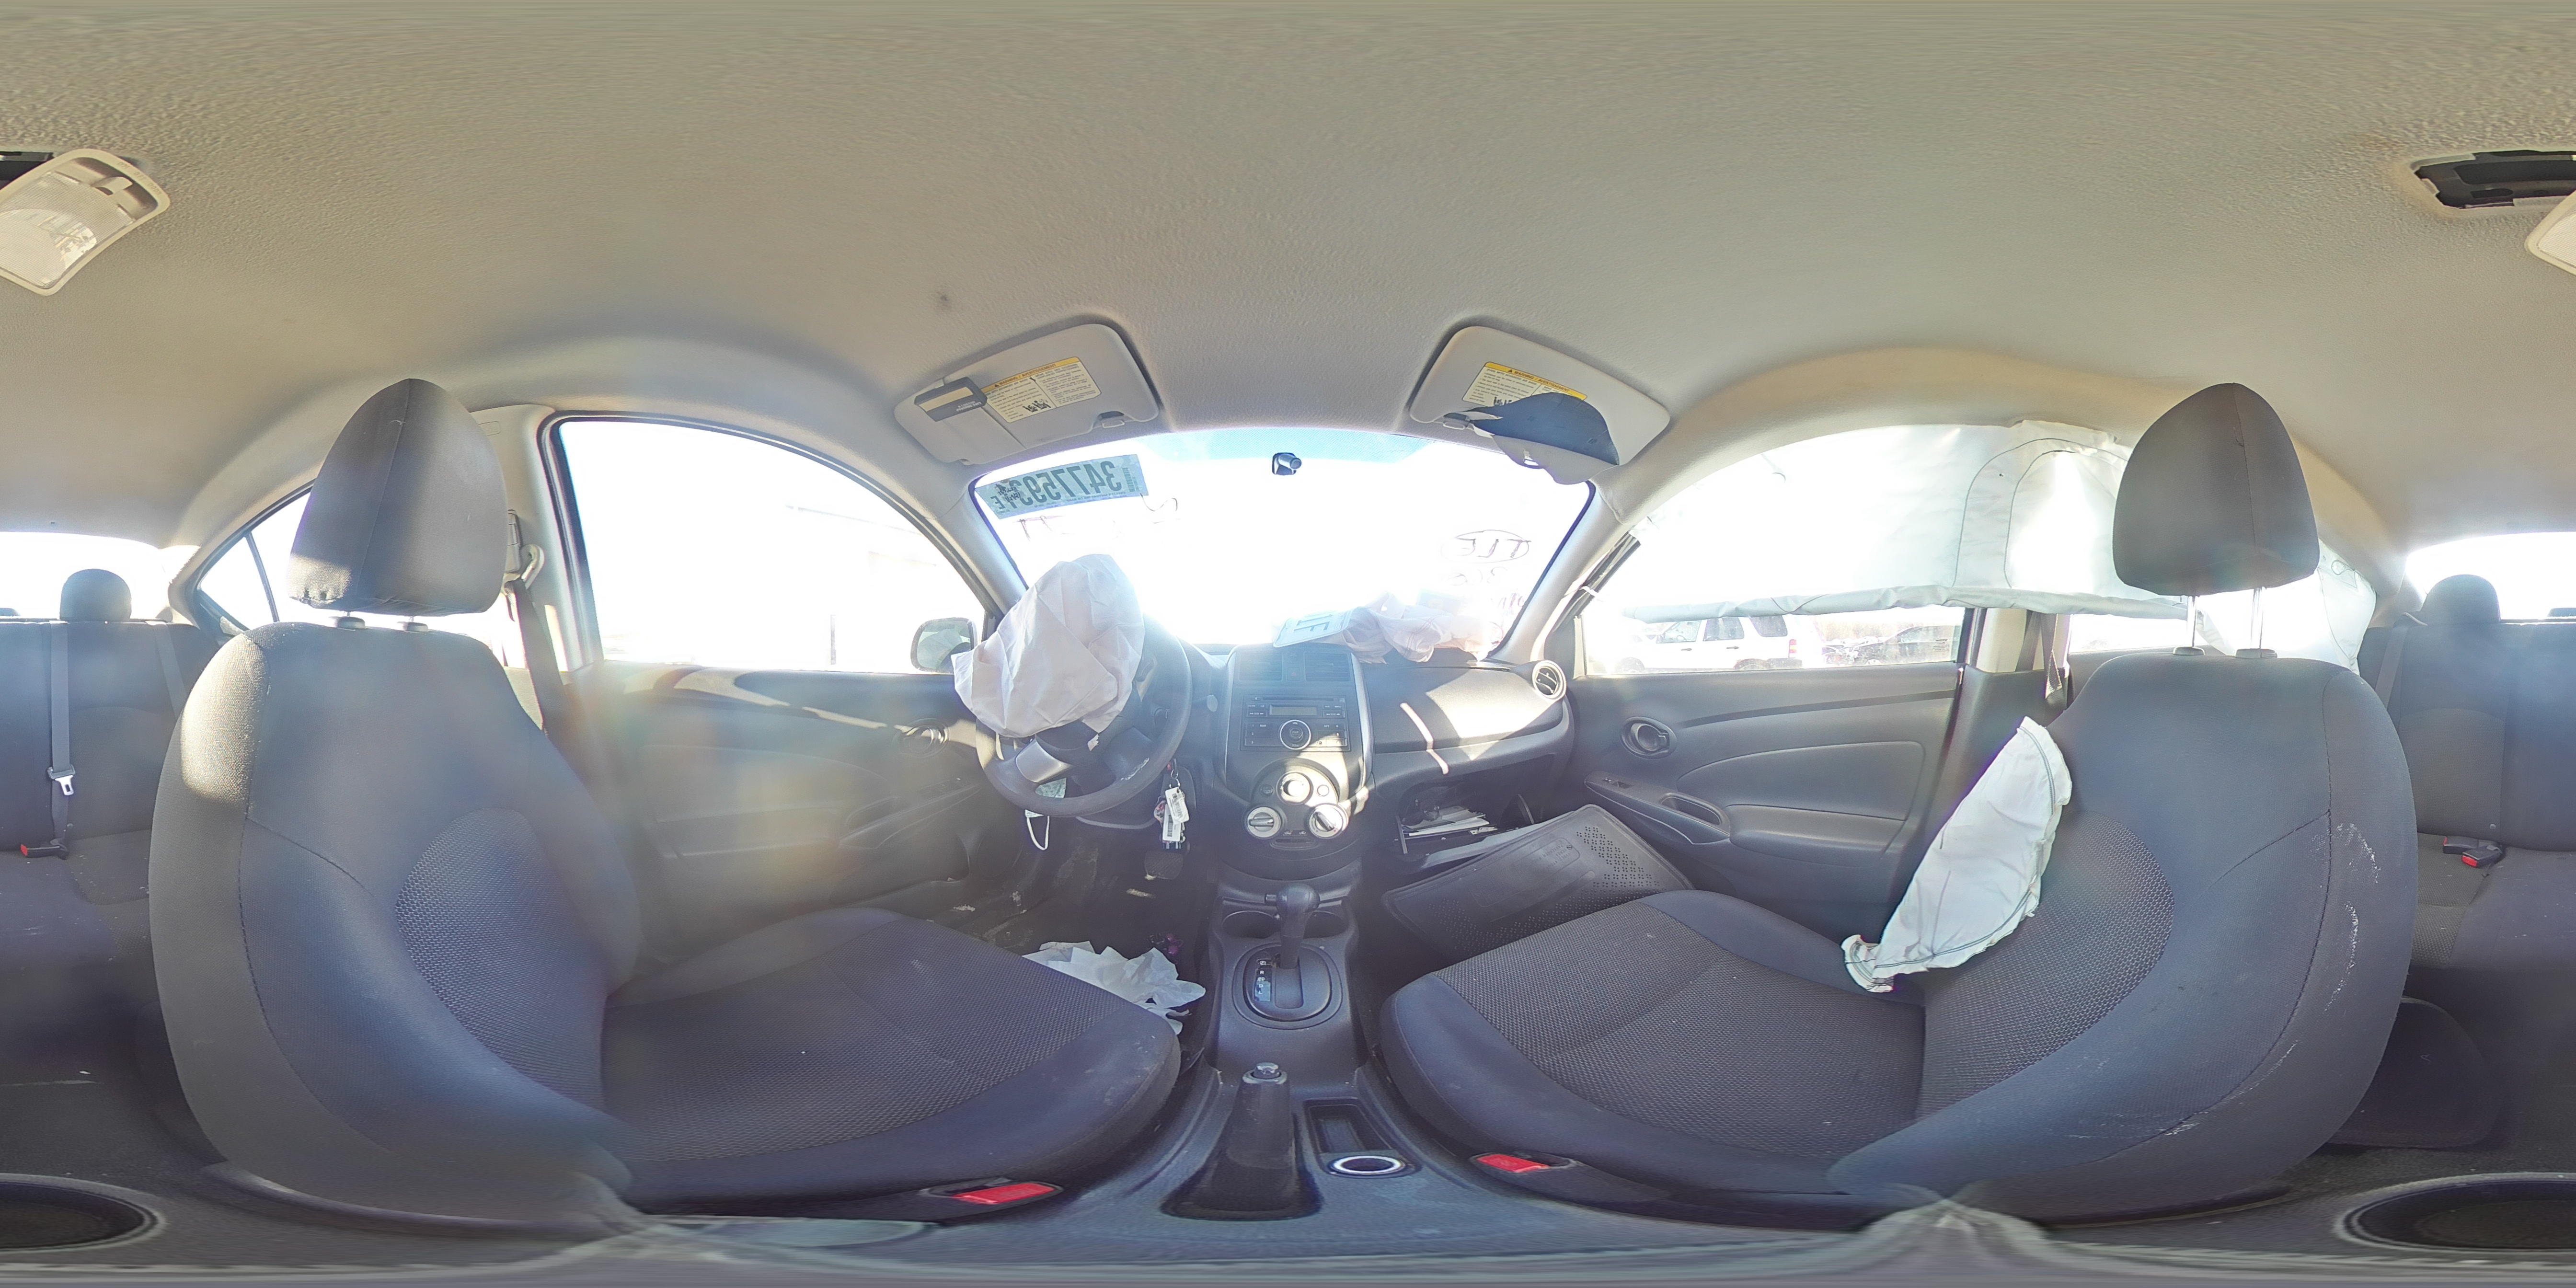 2012 NISSAN VERSA S - Other View